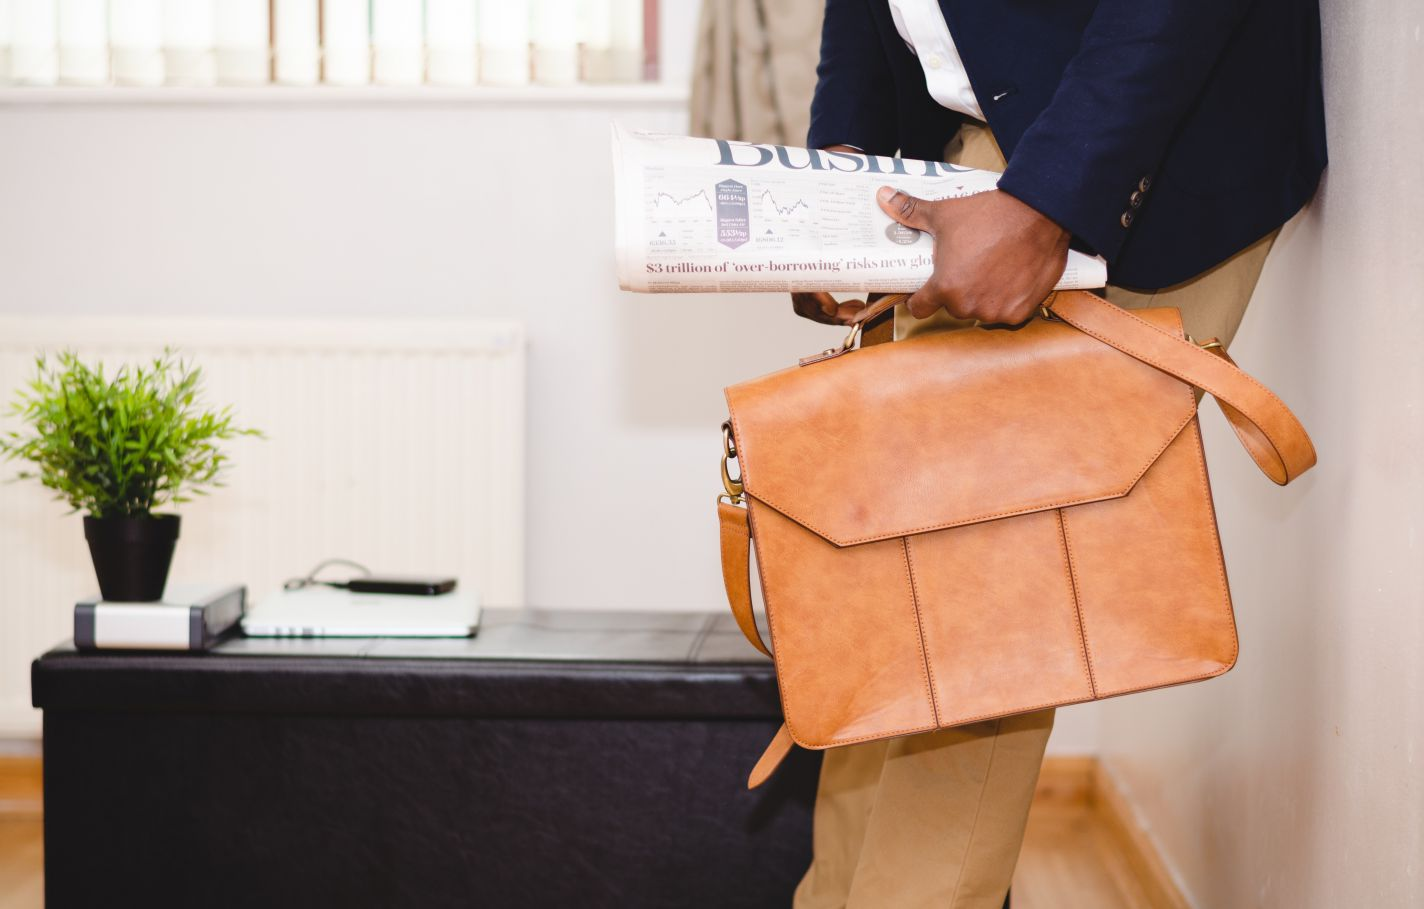 An industrious entrepreneur or business owner leaning against an office wall with a business newspaper in hand along with a tan briefcase.